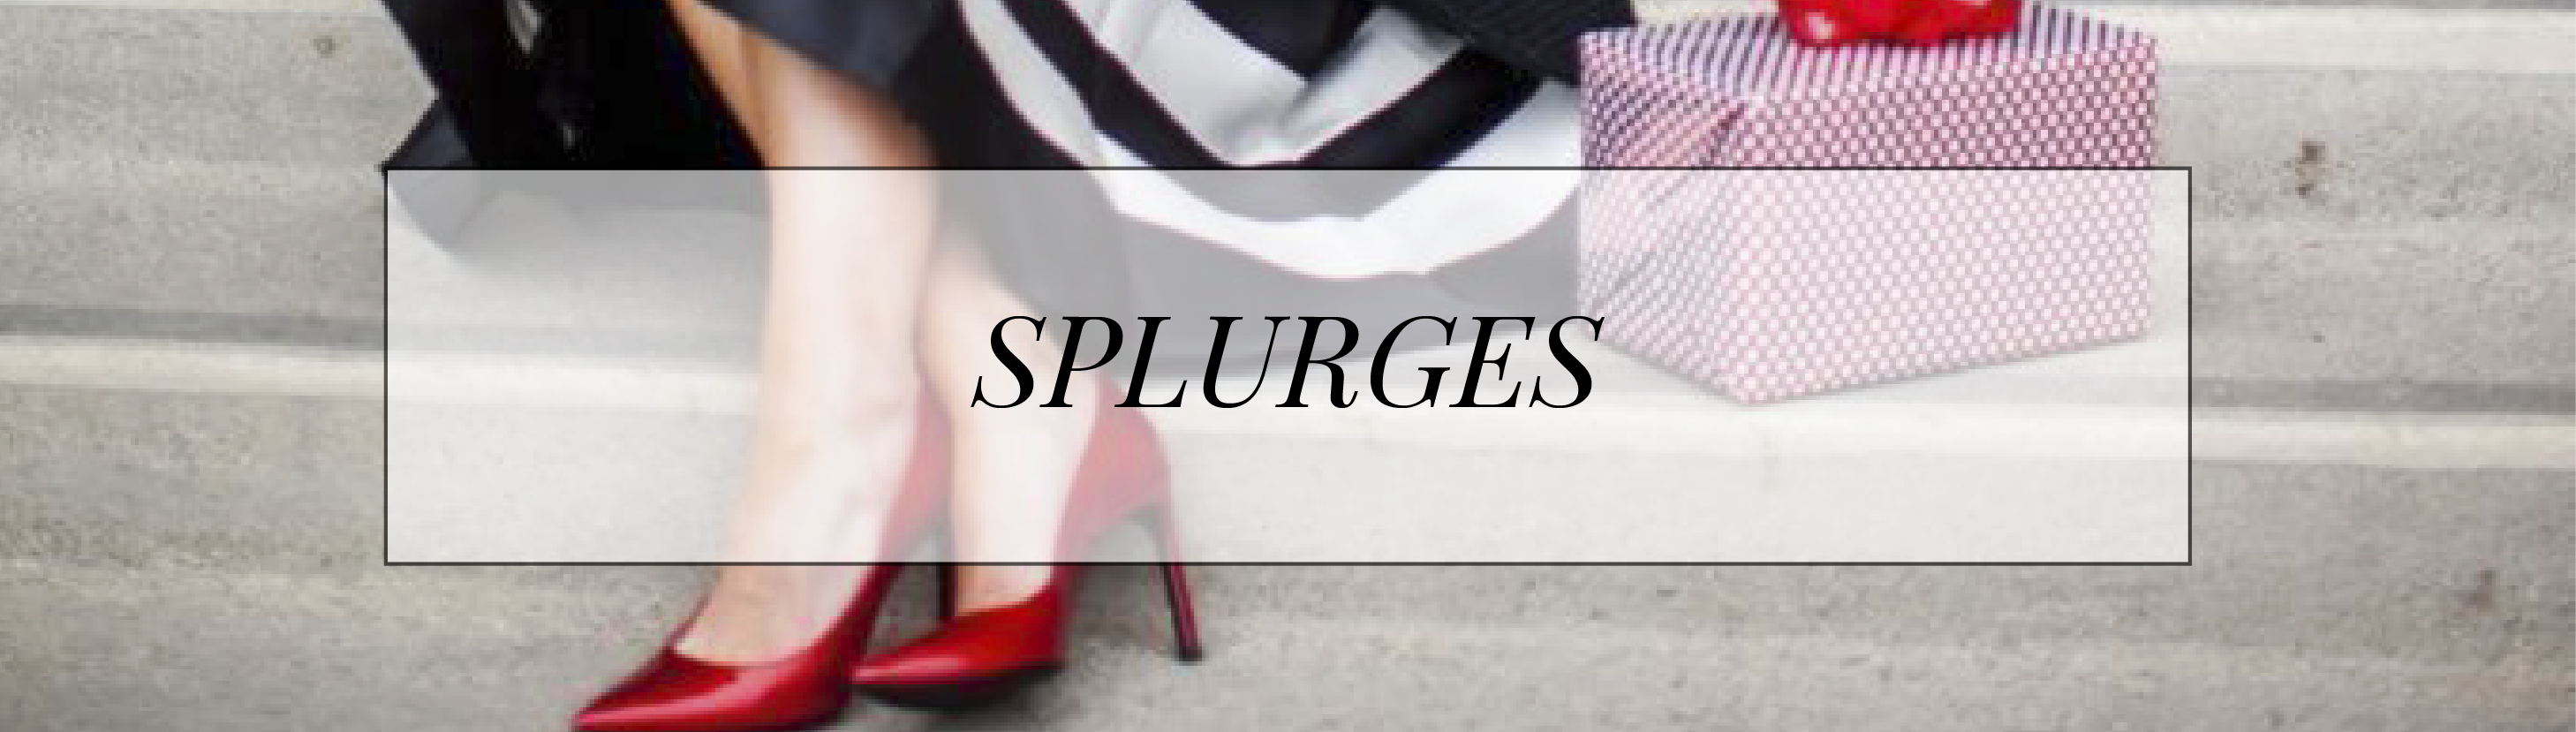 Elle Apparel Holiday Gift Guide: Splurges